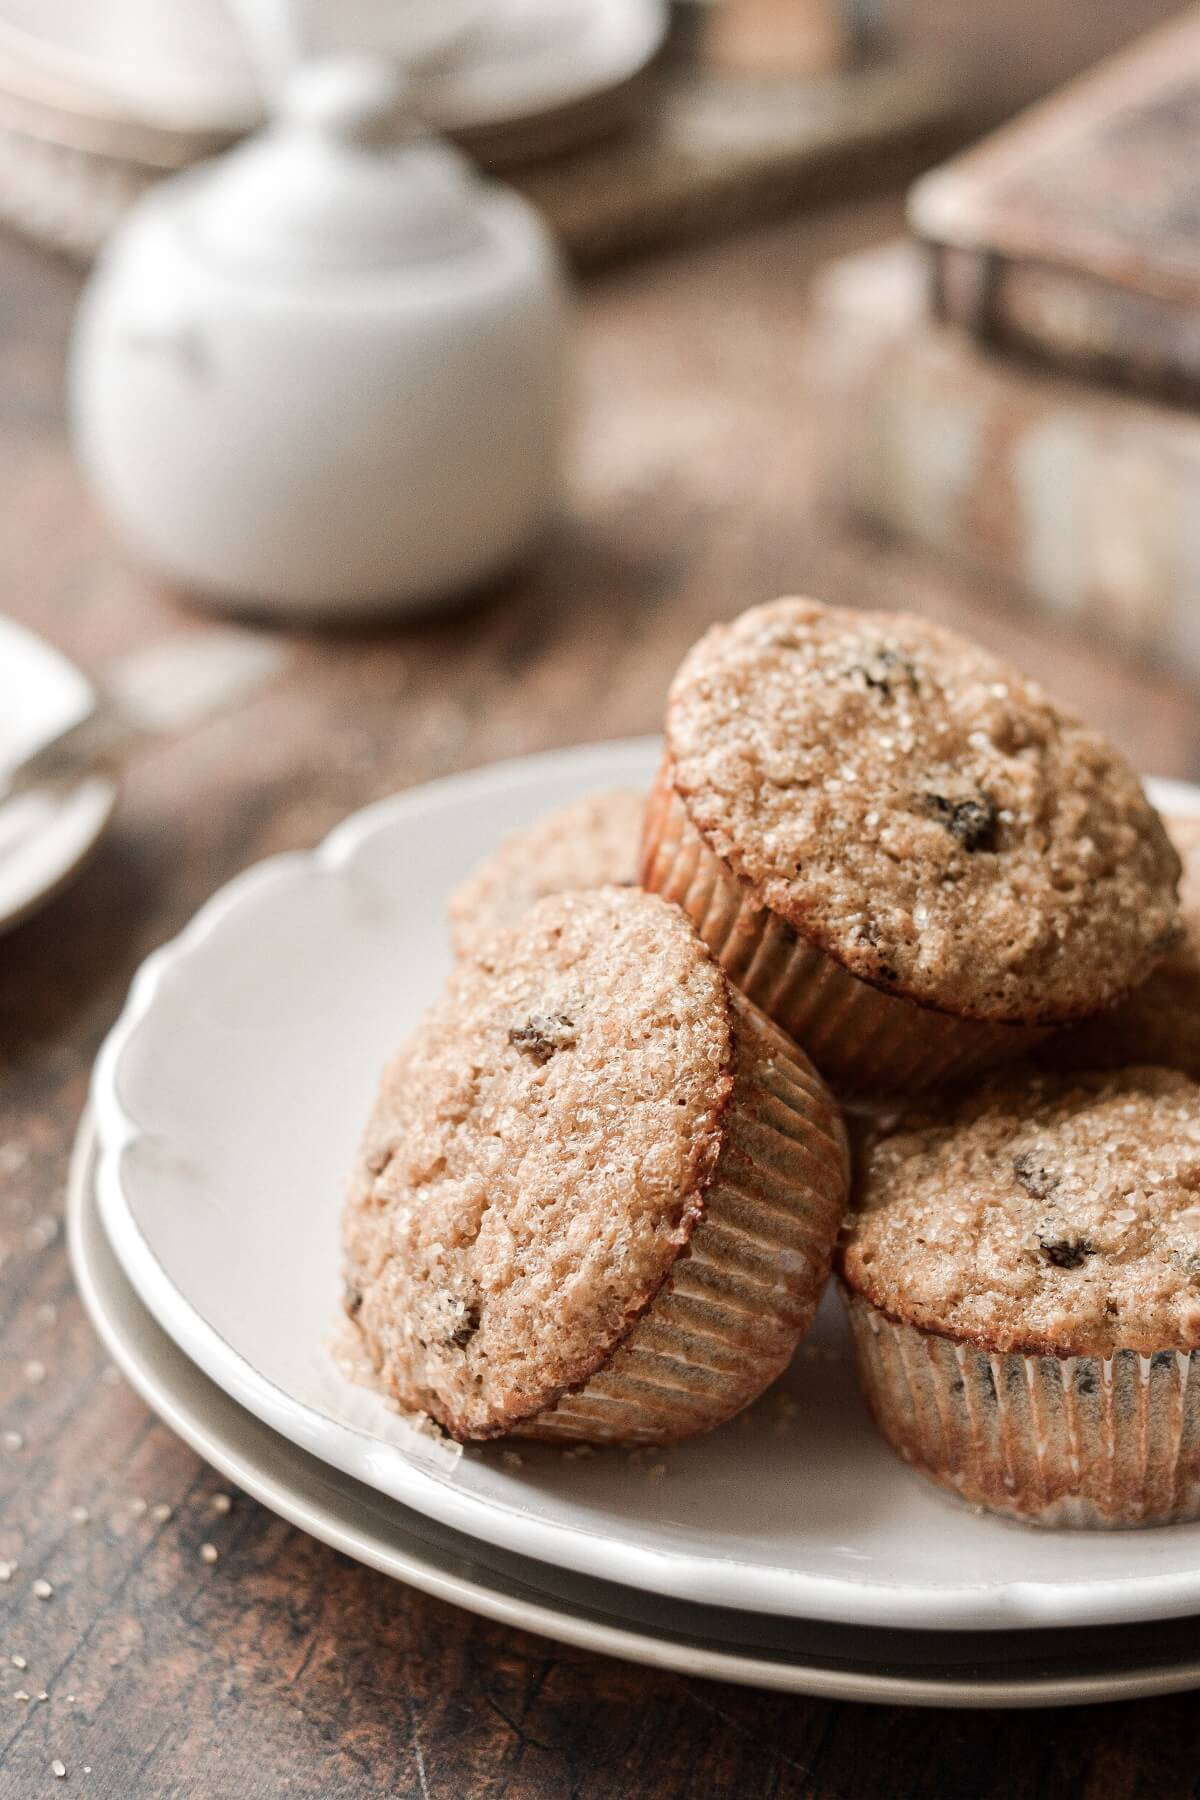 Oatmeal raisin muffins, piled on a plate.